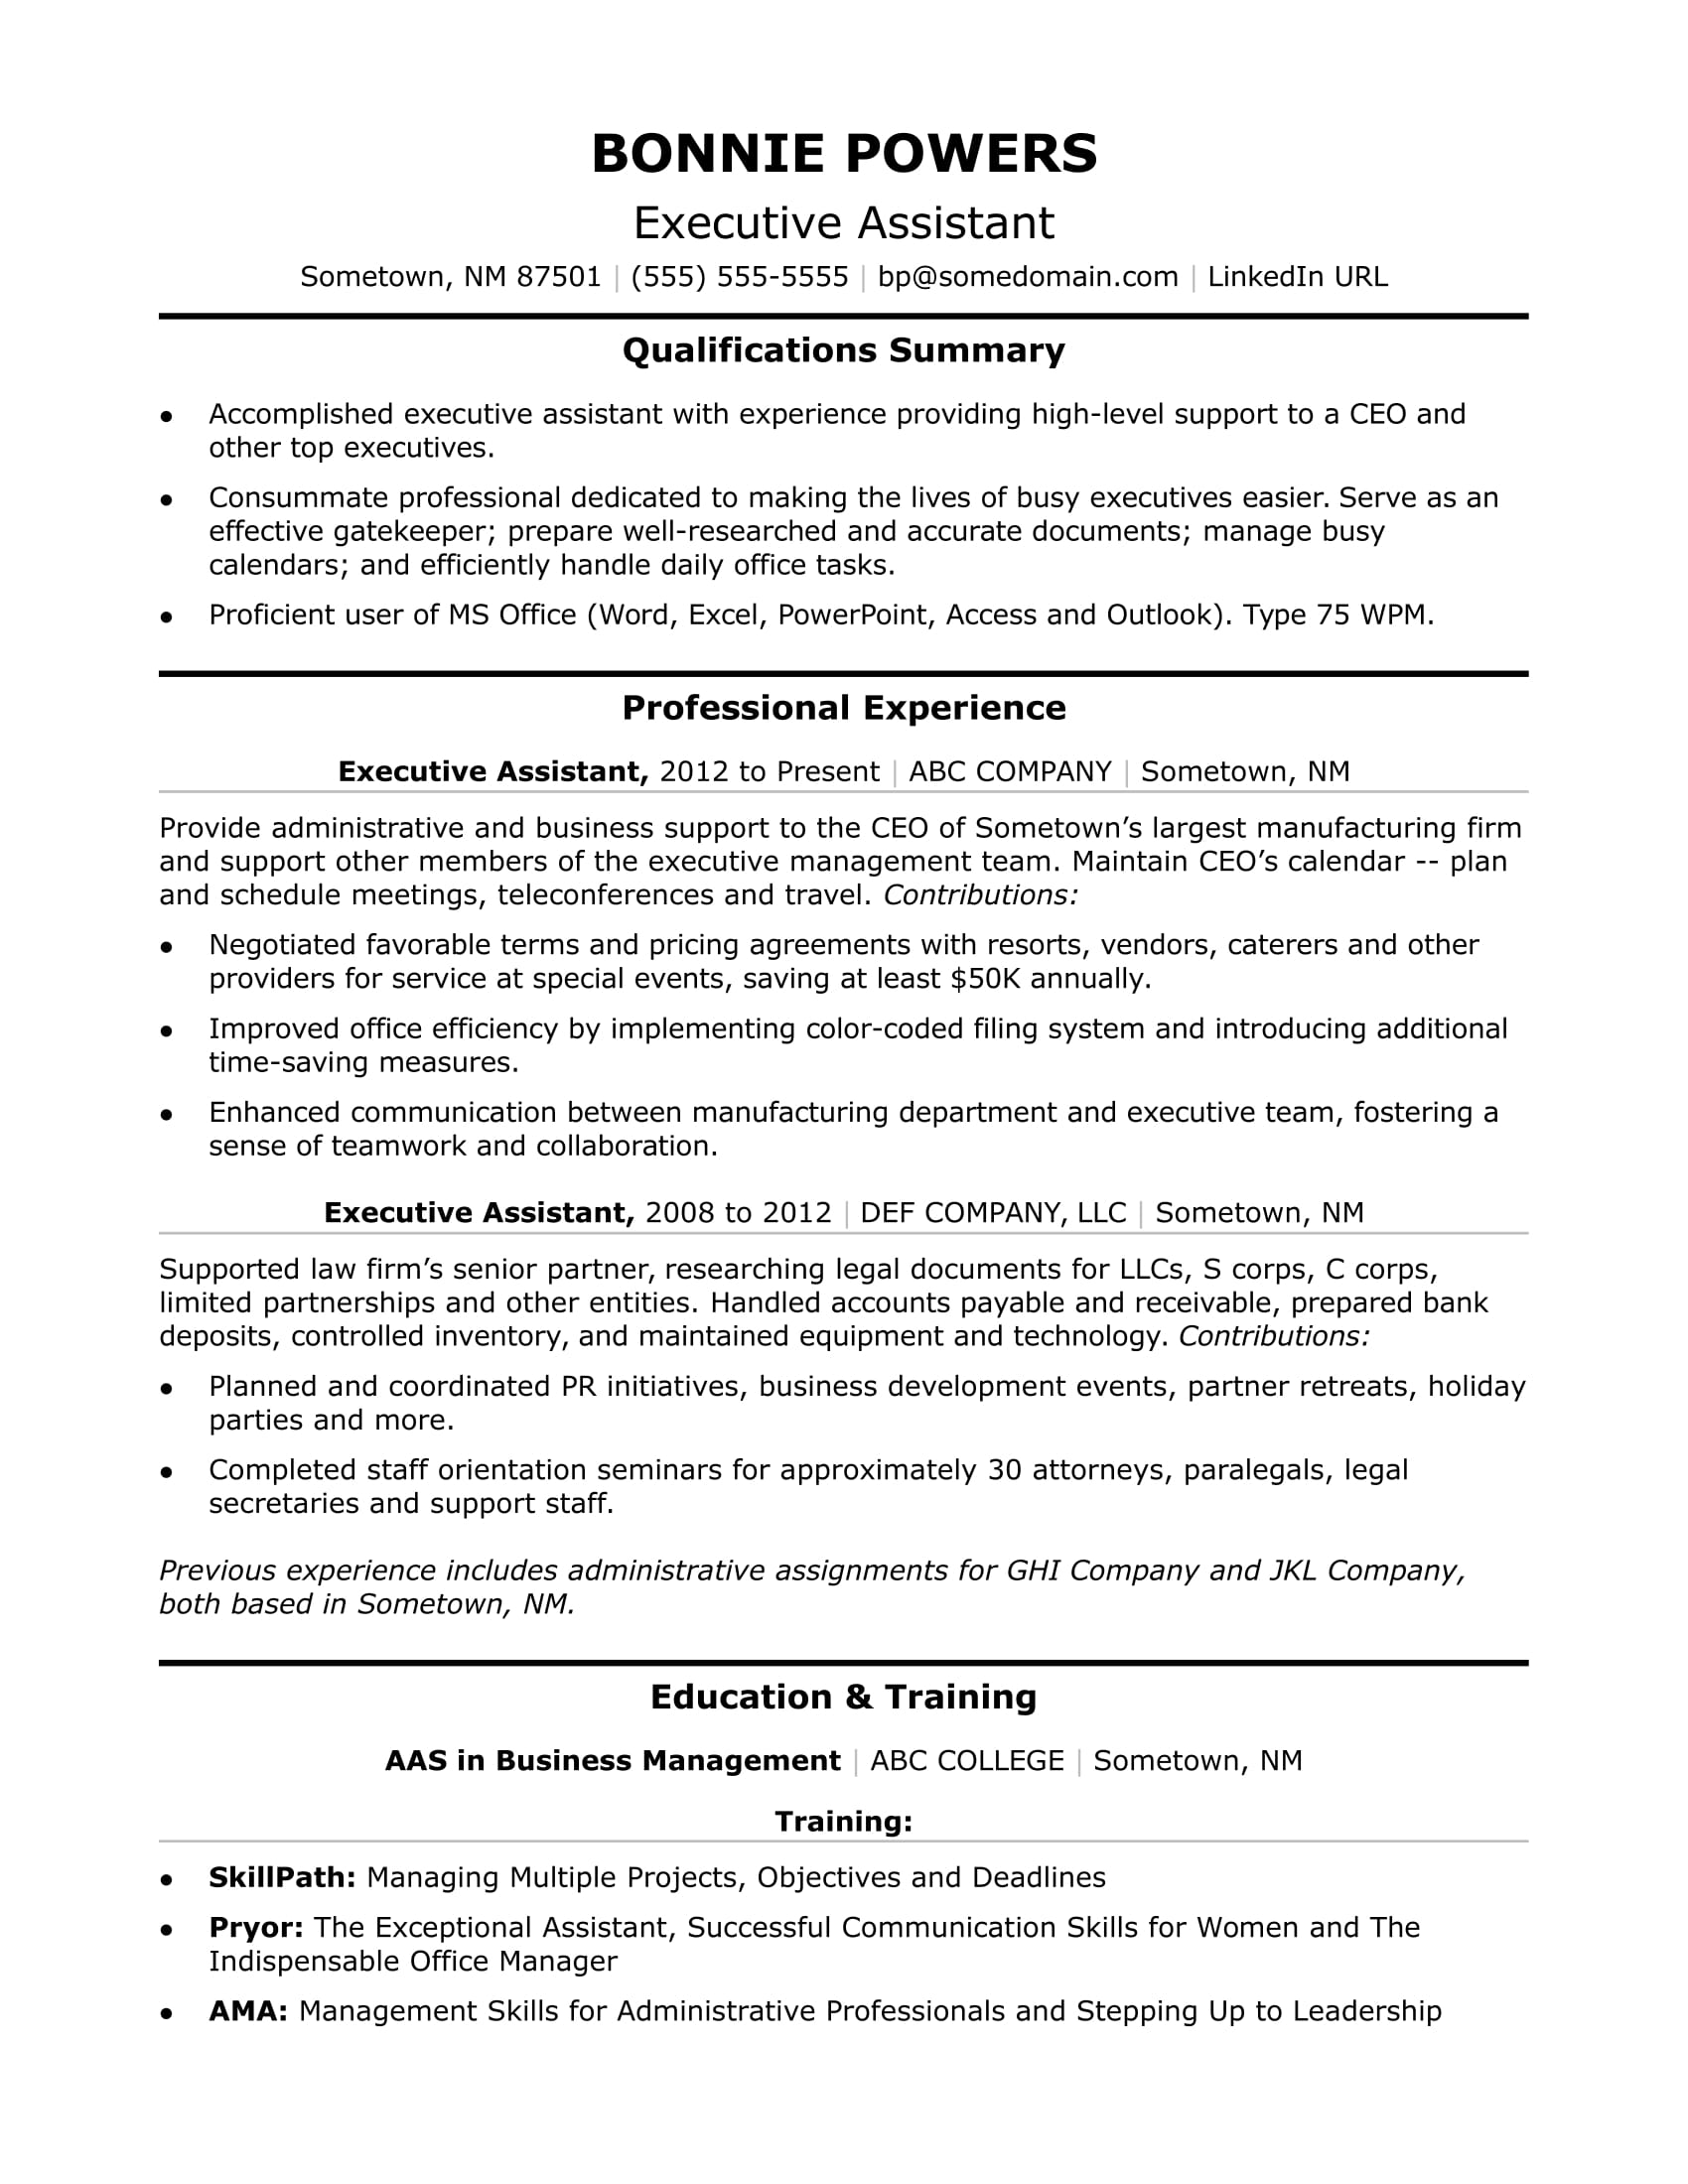 resume Admin Executive Roles And Responsibilities Resume executive administrative assistant resume sample monster com sample